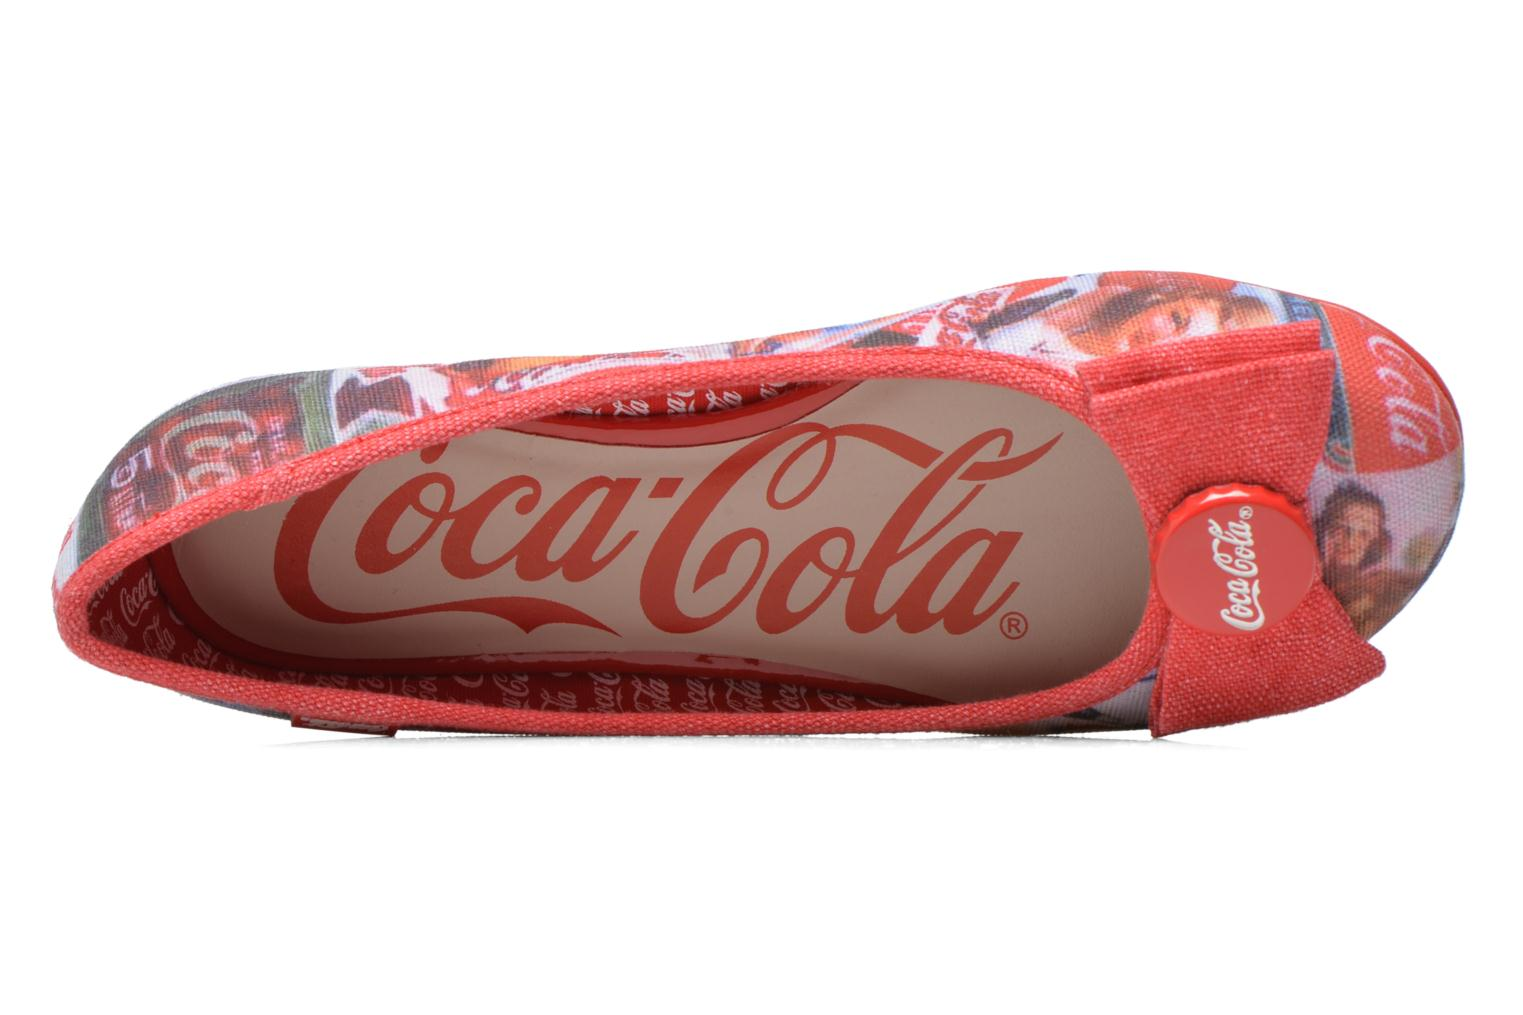 Ballerines Coca-cola shoes Tampinas Multicolore vue gauche